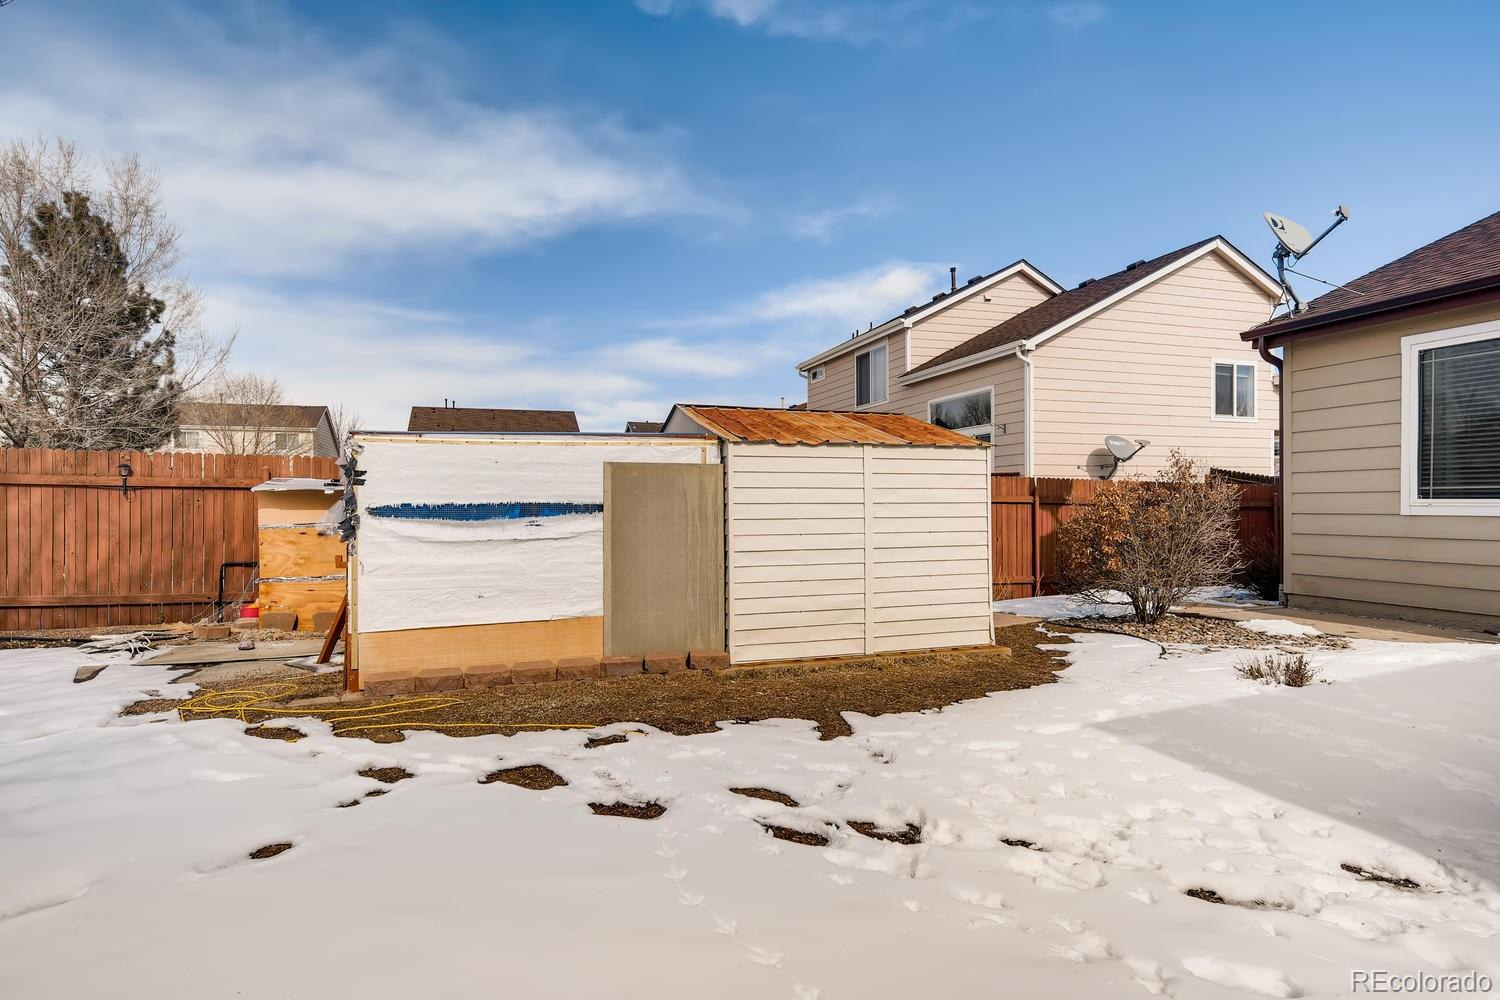 MLS# 5783078 - 27 - 587 Prairie Star Circle, Colorado Springs, CO 80916